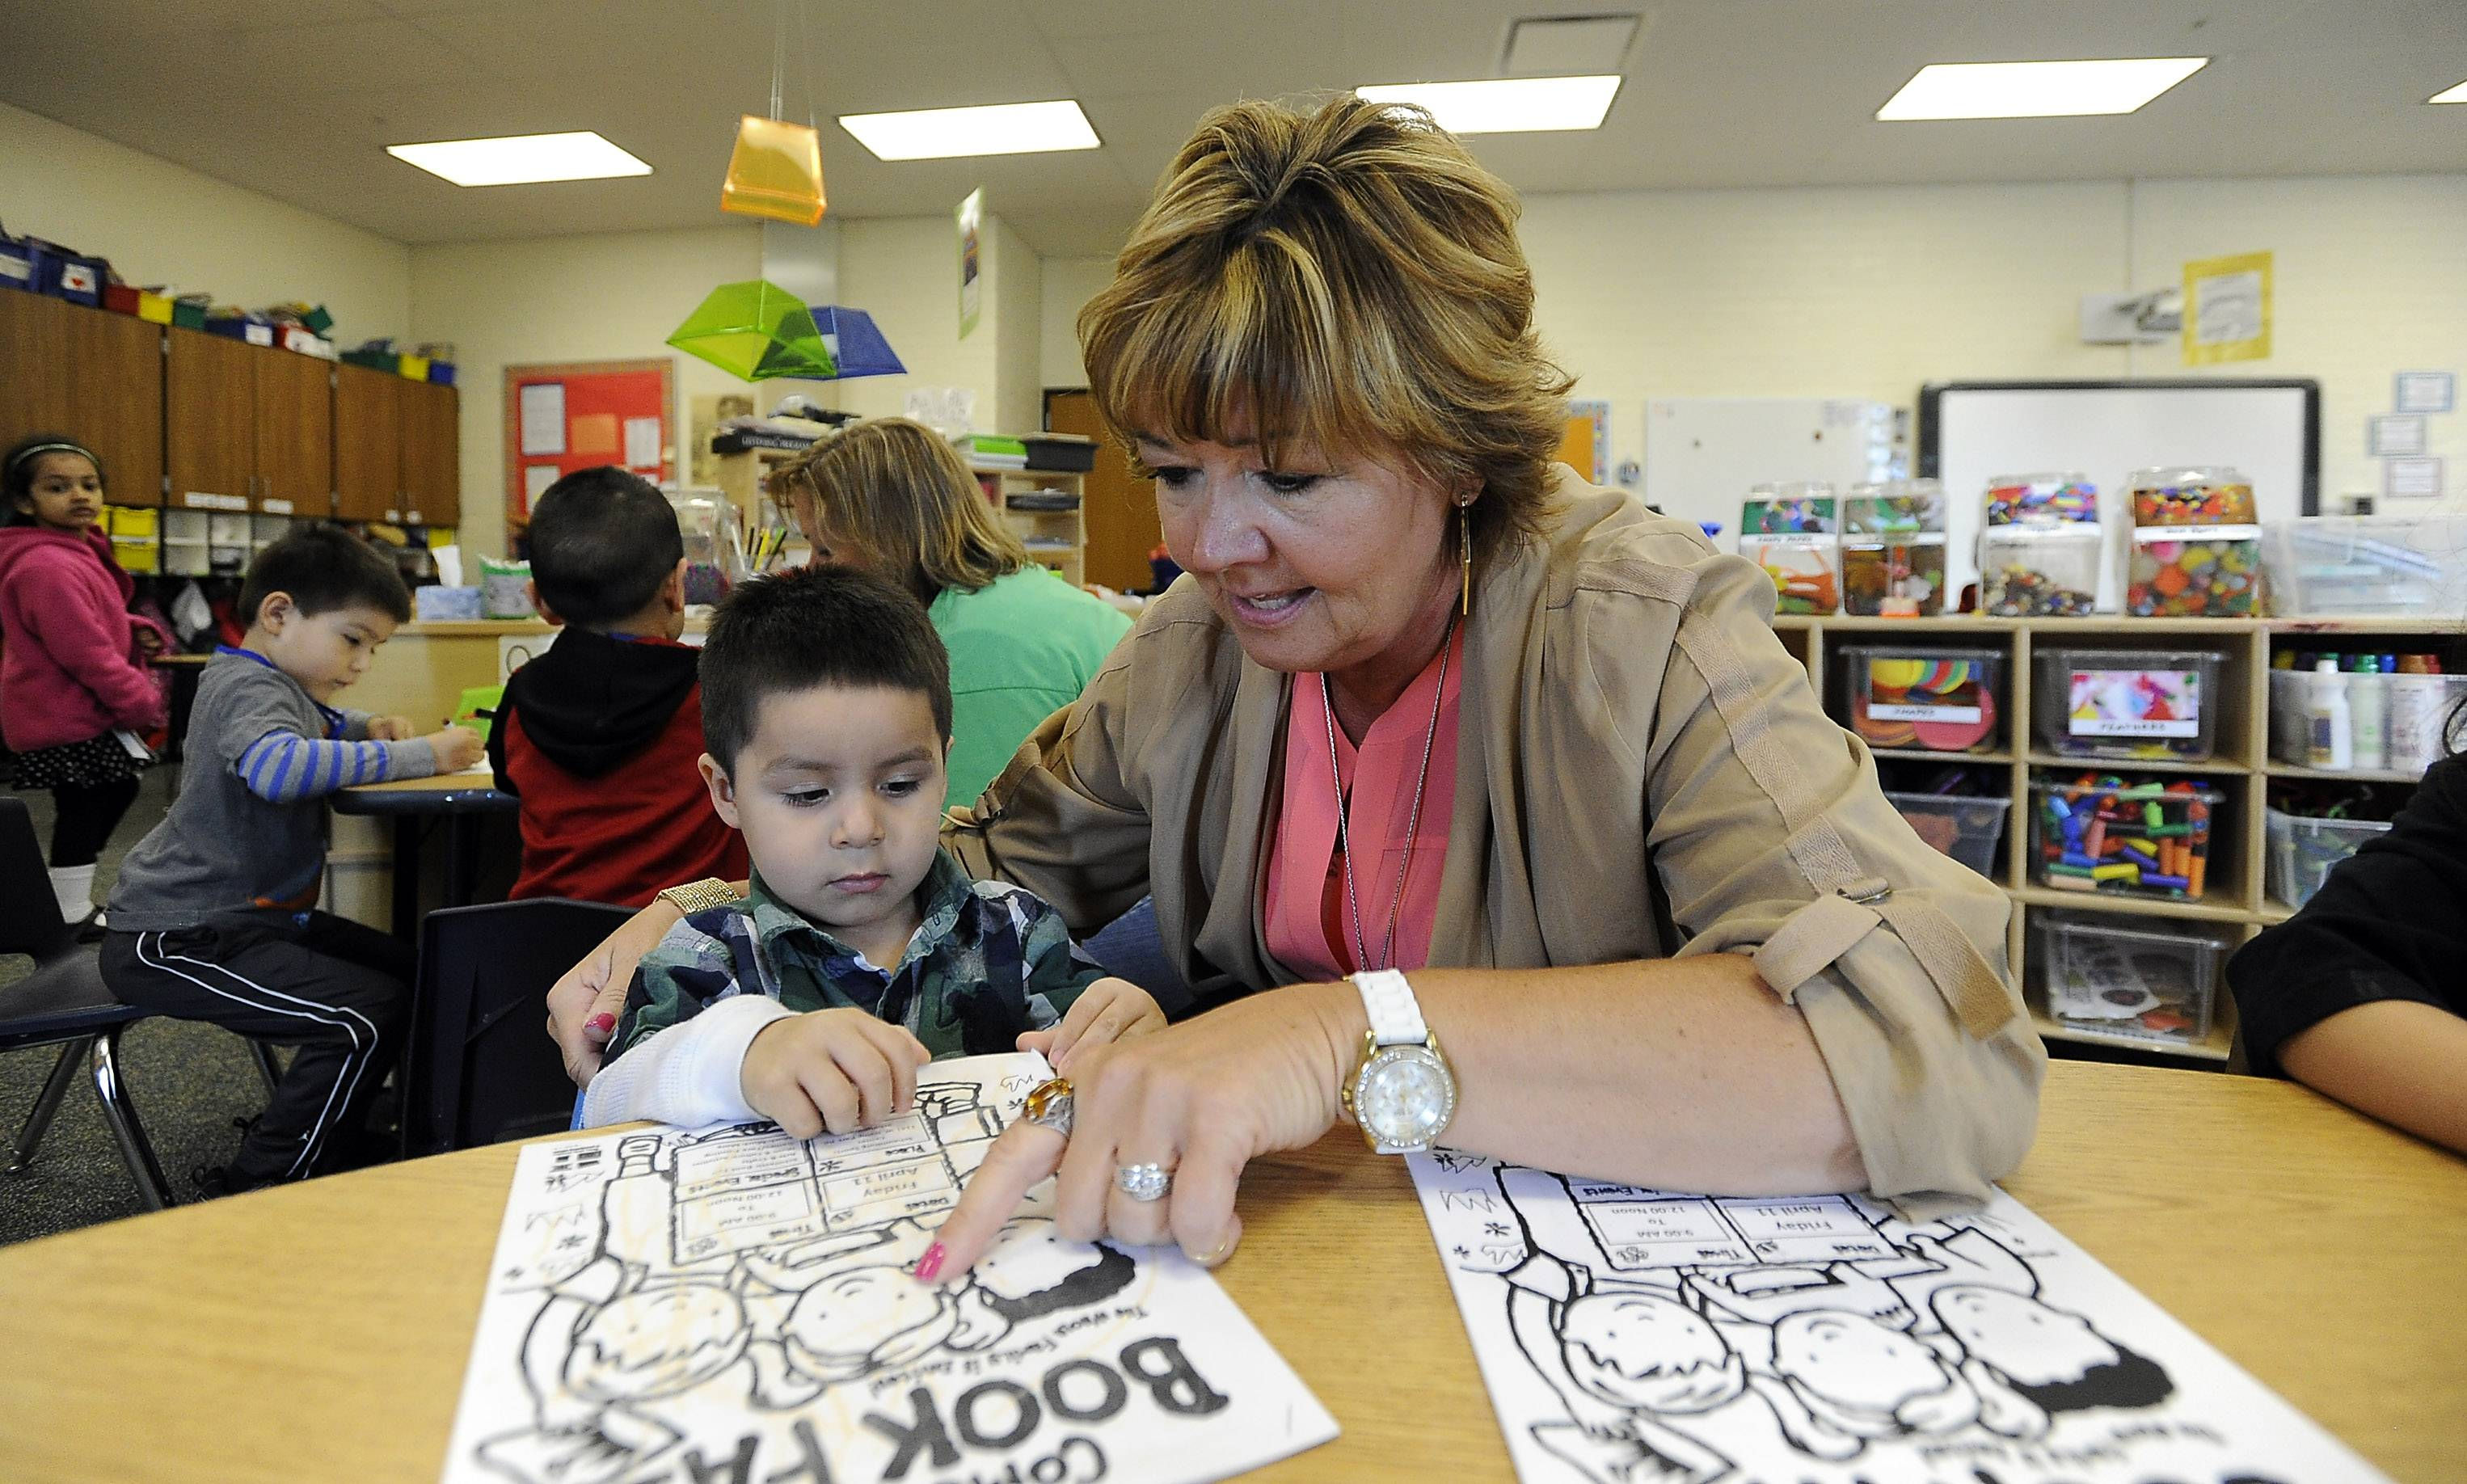 Schaumburg Township Elementary District 54 Early Childhood Director Sue Mayernick works with Hector Benitez, 3, at Keller Junior High School in Schaumburg.